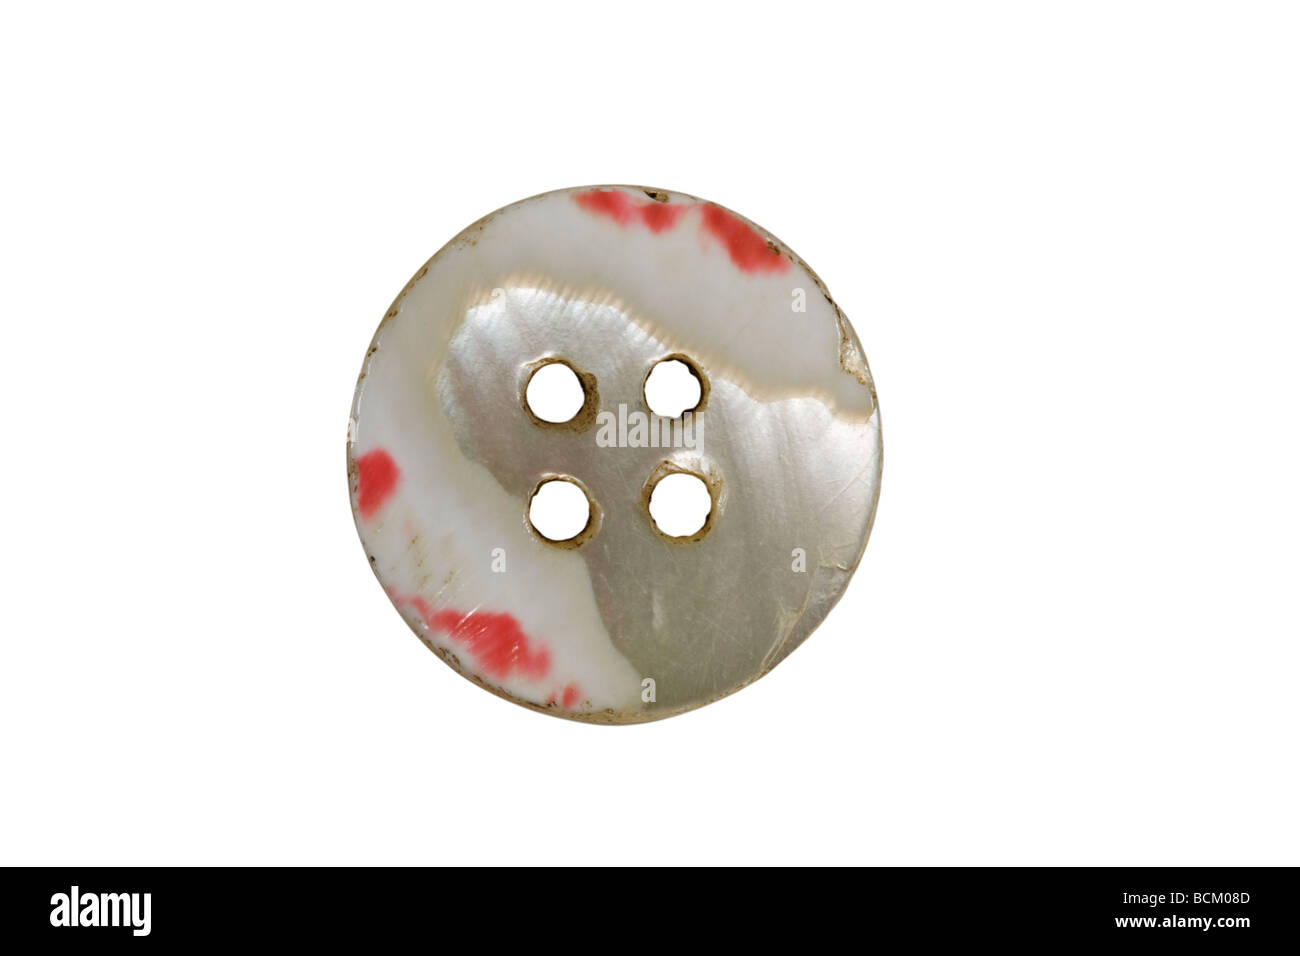 Red and white coloured button - Stock Image